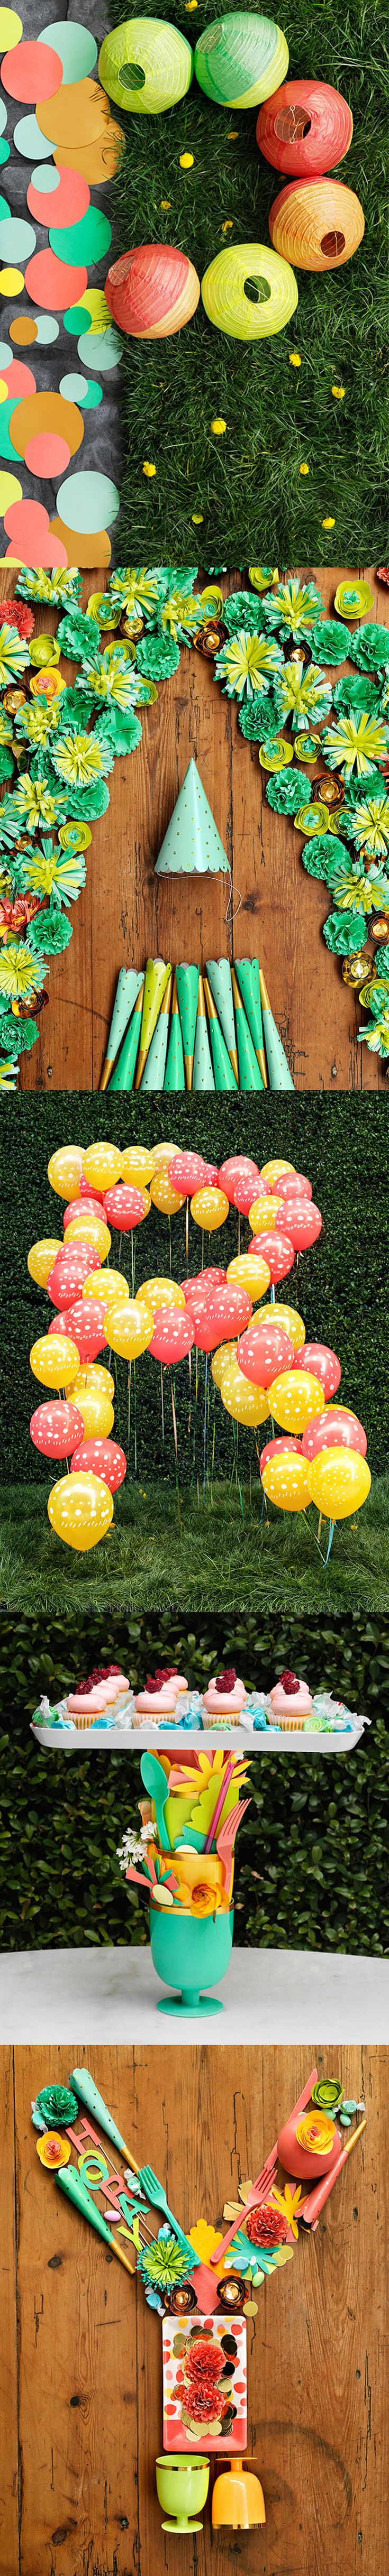 Get ready to PARTY! The Oh Joy for Target collection launches online and in stores March 16.